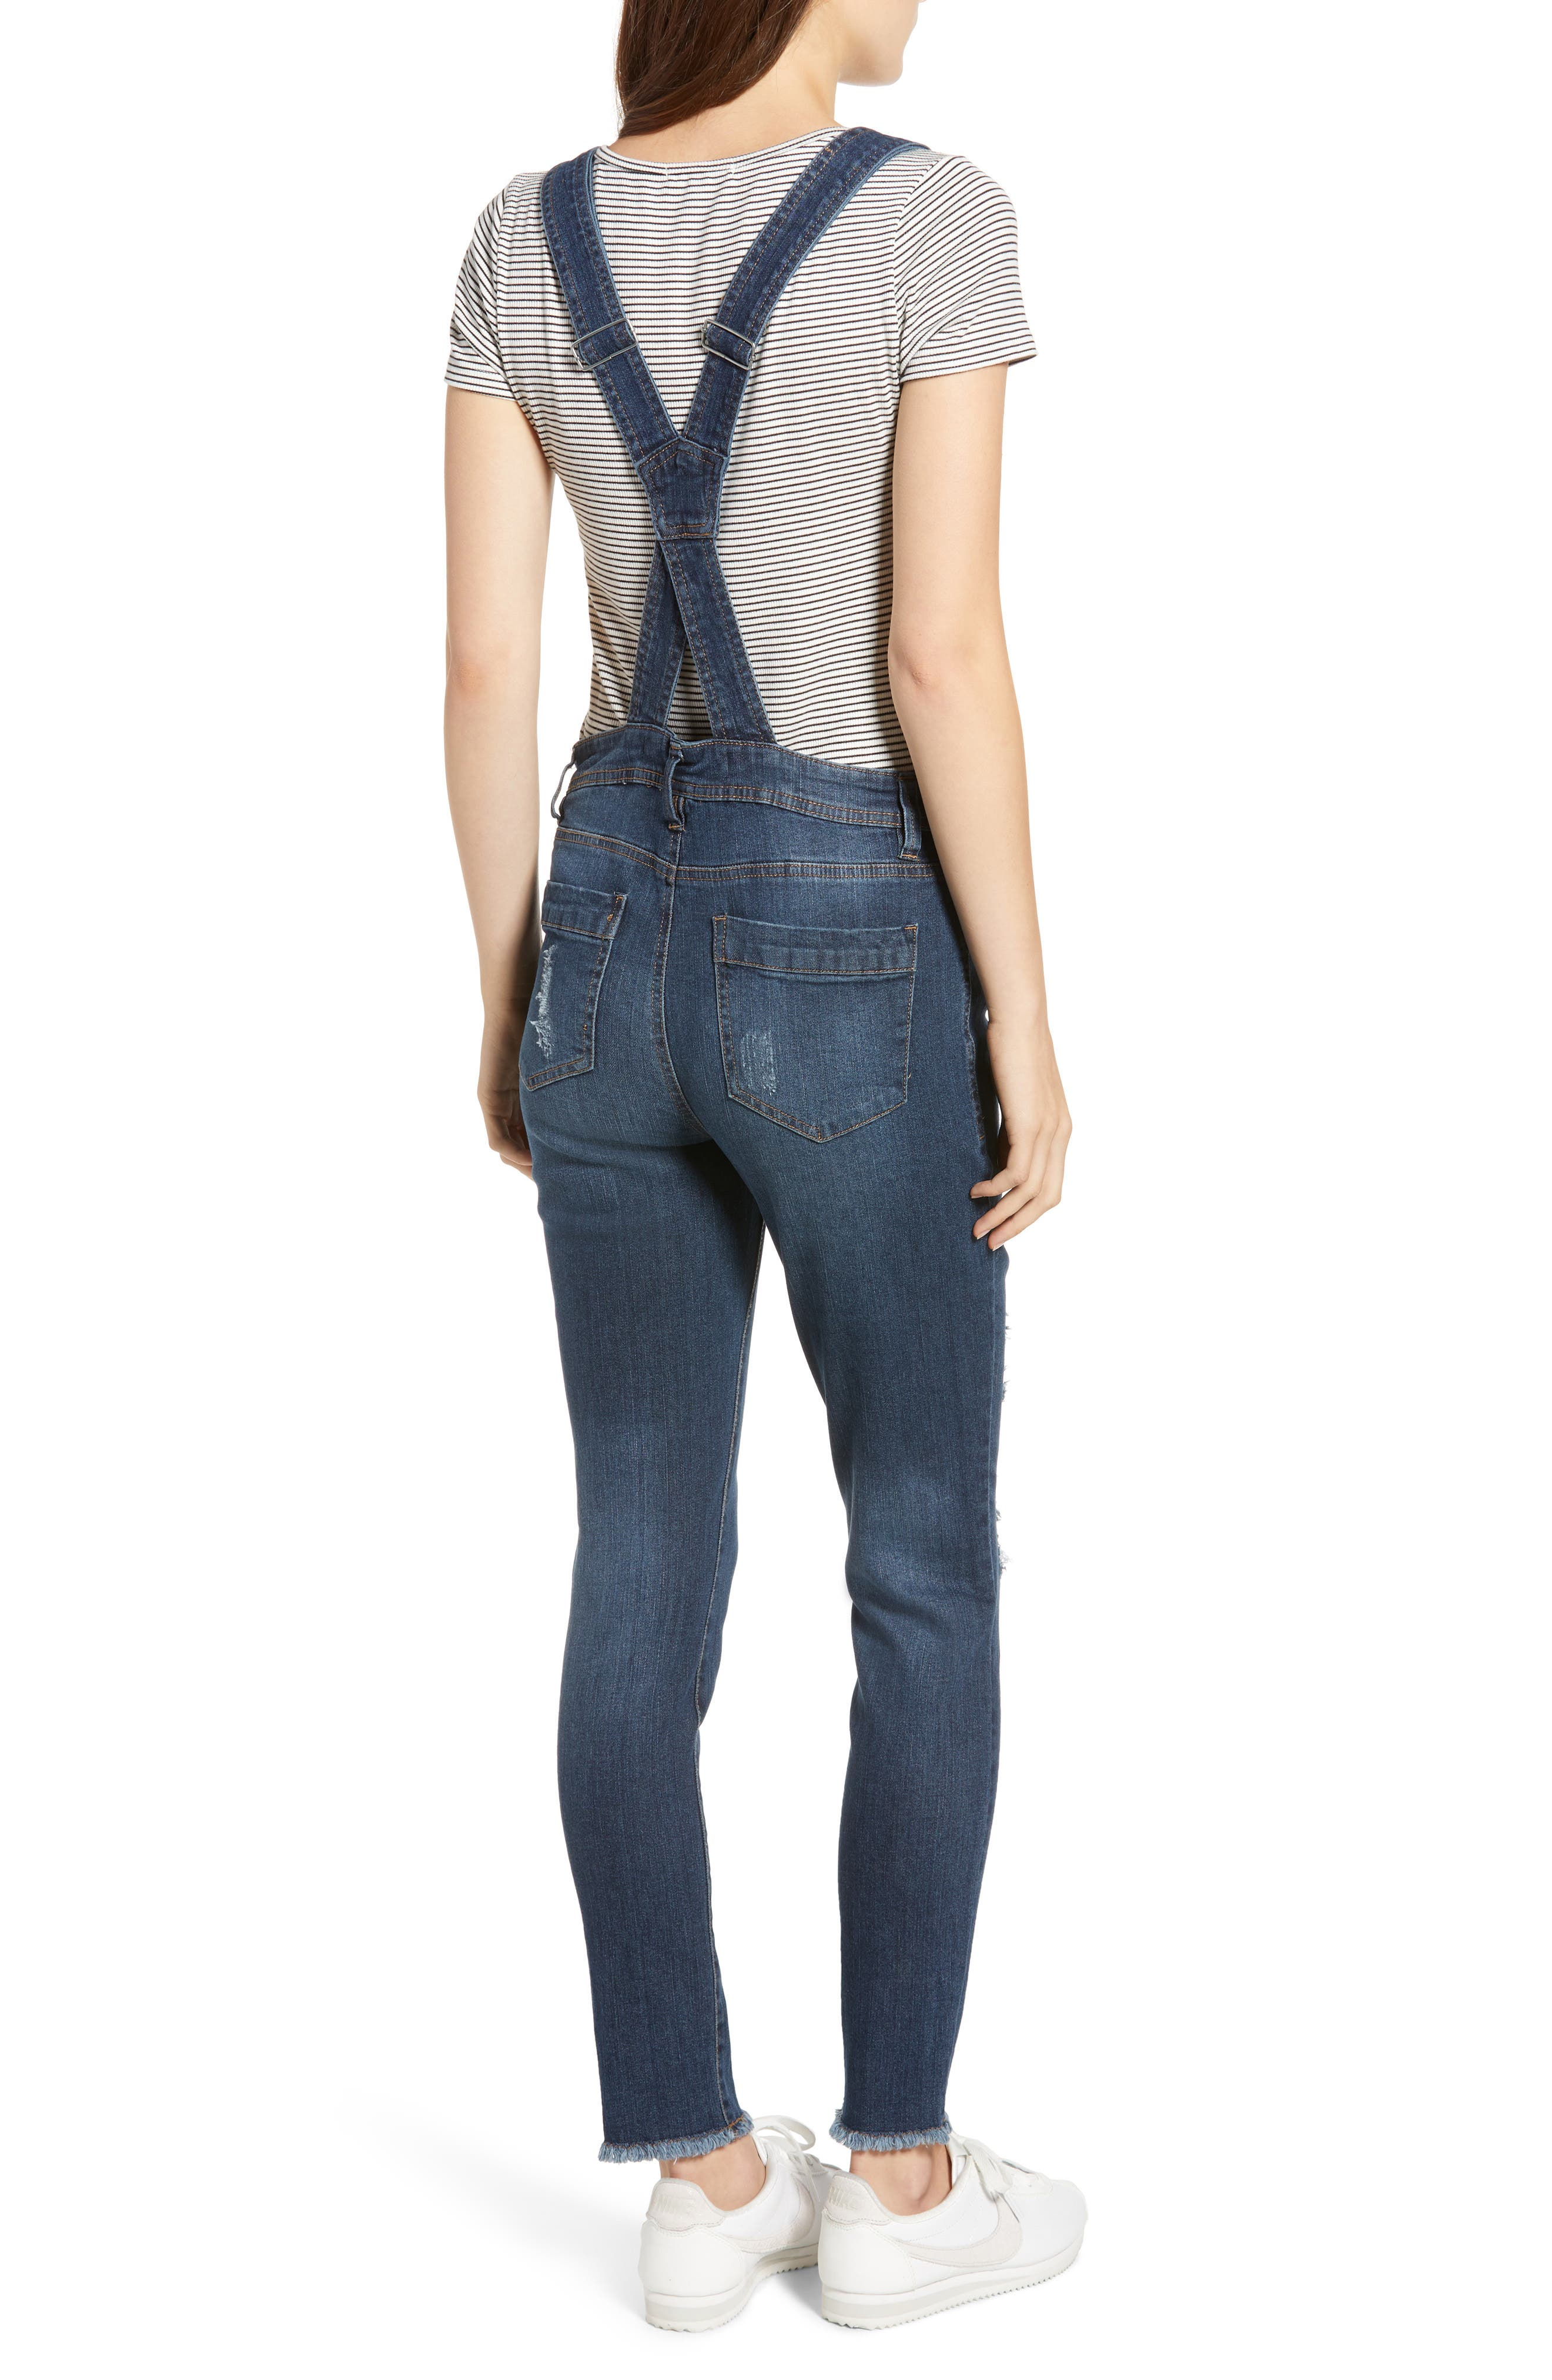 TINSEL,                             Ripped Skinny Overalls,                             Alternate thumbnail 2, color,                             400